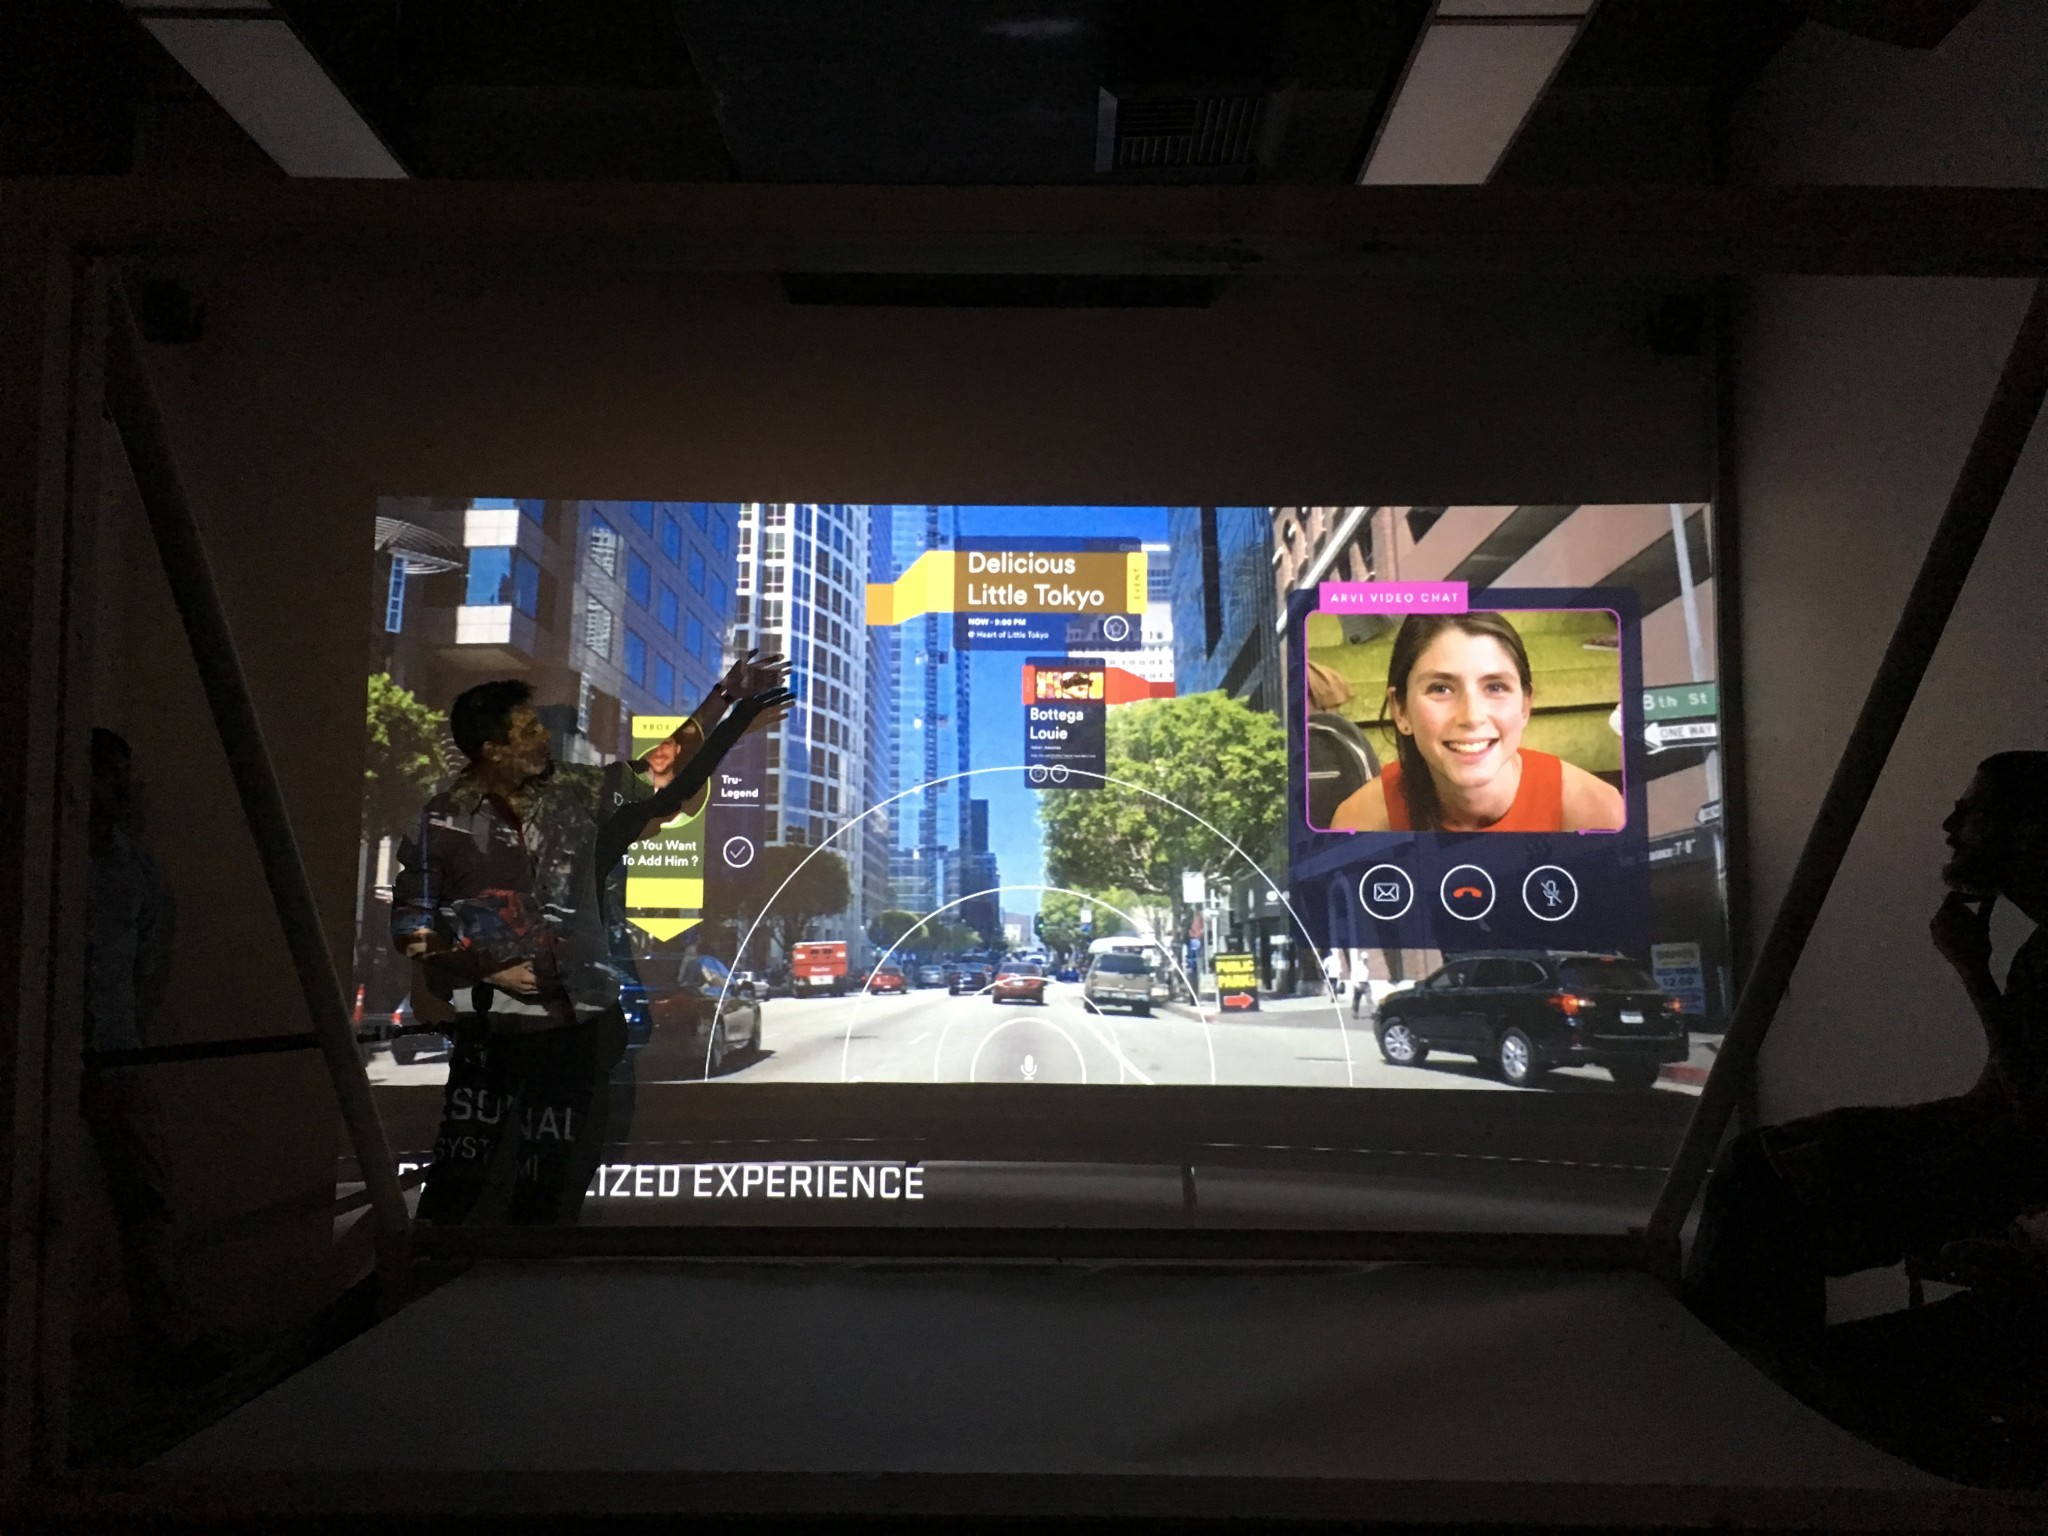 The car prototype ARVI (Augmented Reality Vehicular interface) is a social gaming experience in a moving platform. Photo by Nik Hafermaas.